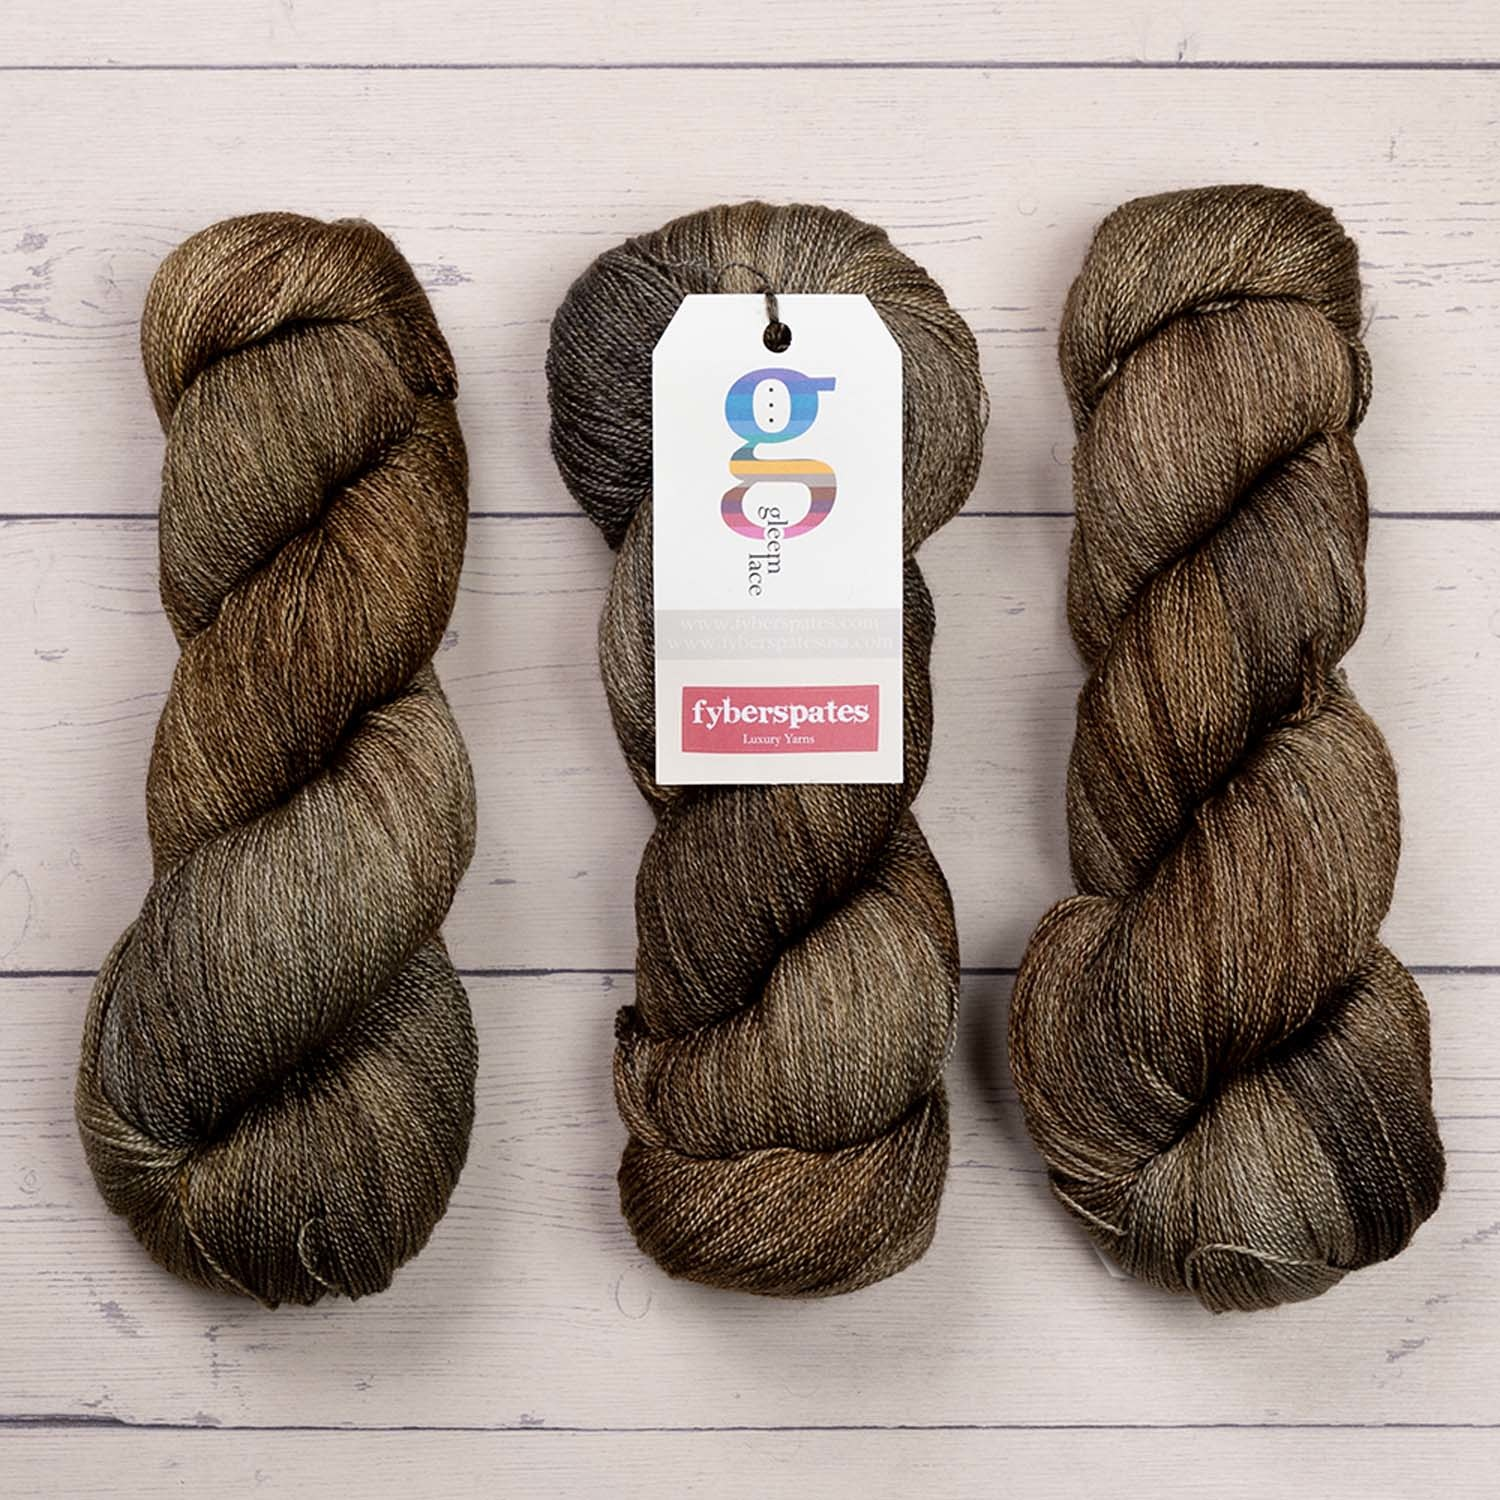 Fyberspates GLEEM LACE - 703 SILVER AND BRONZE